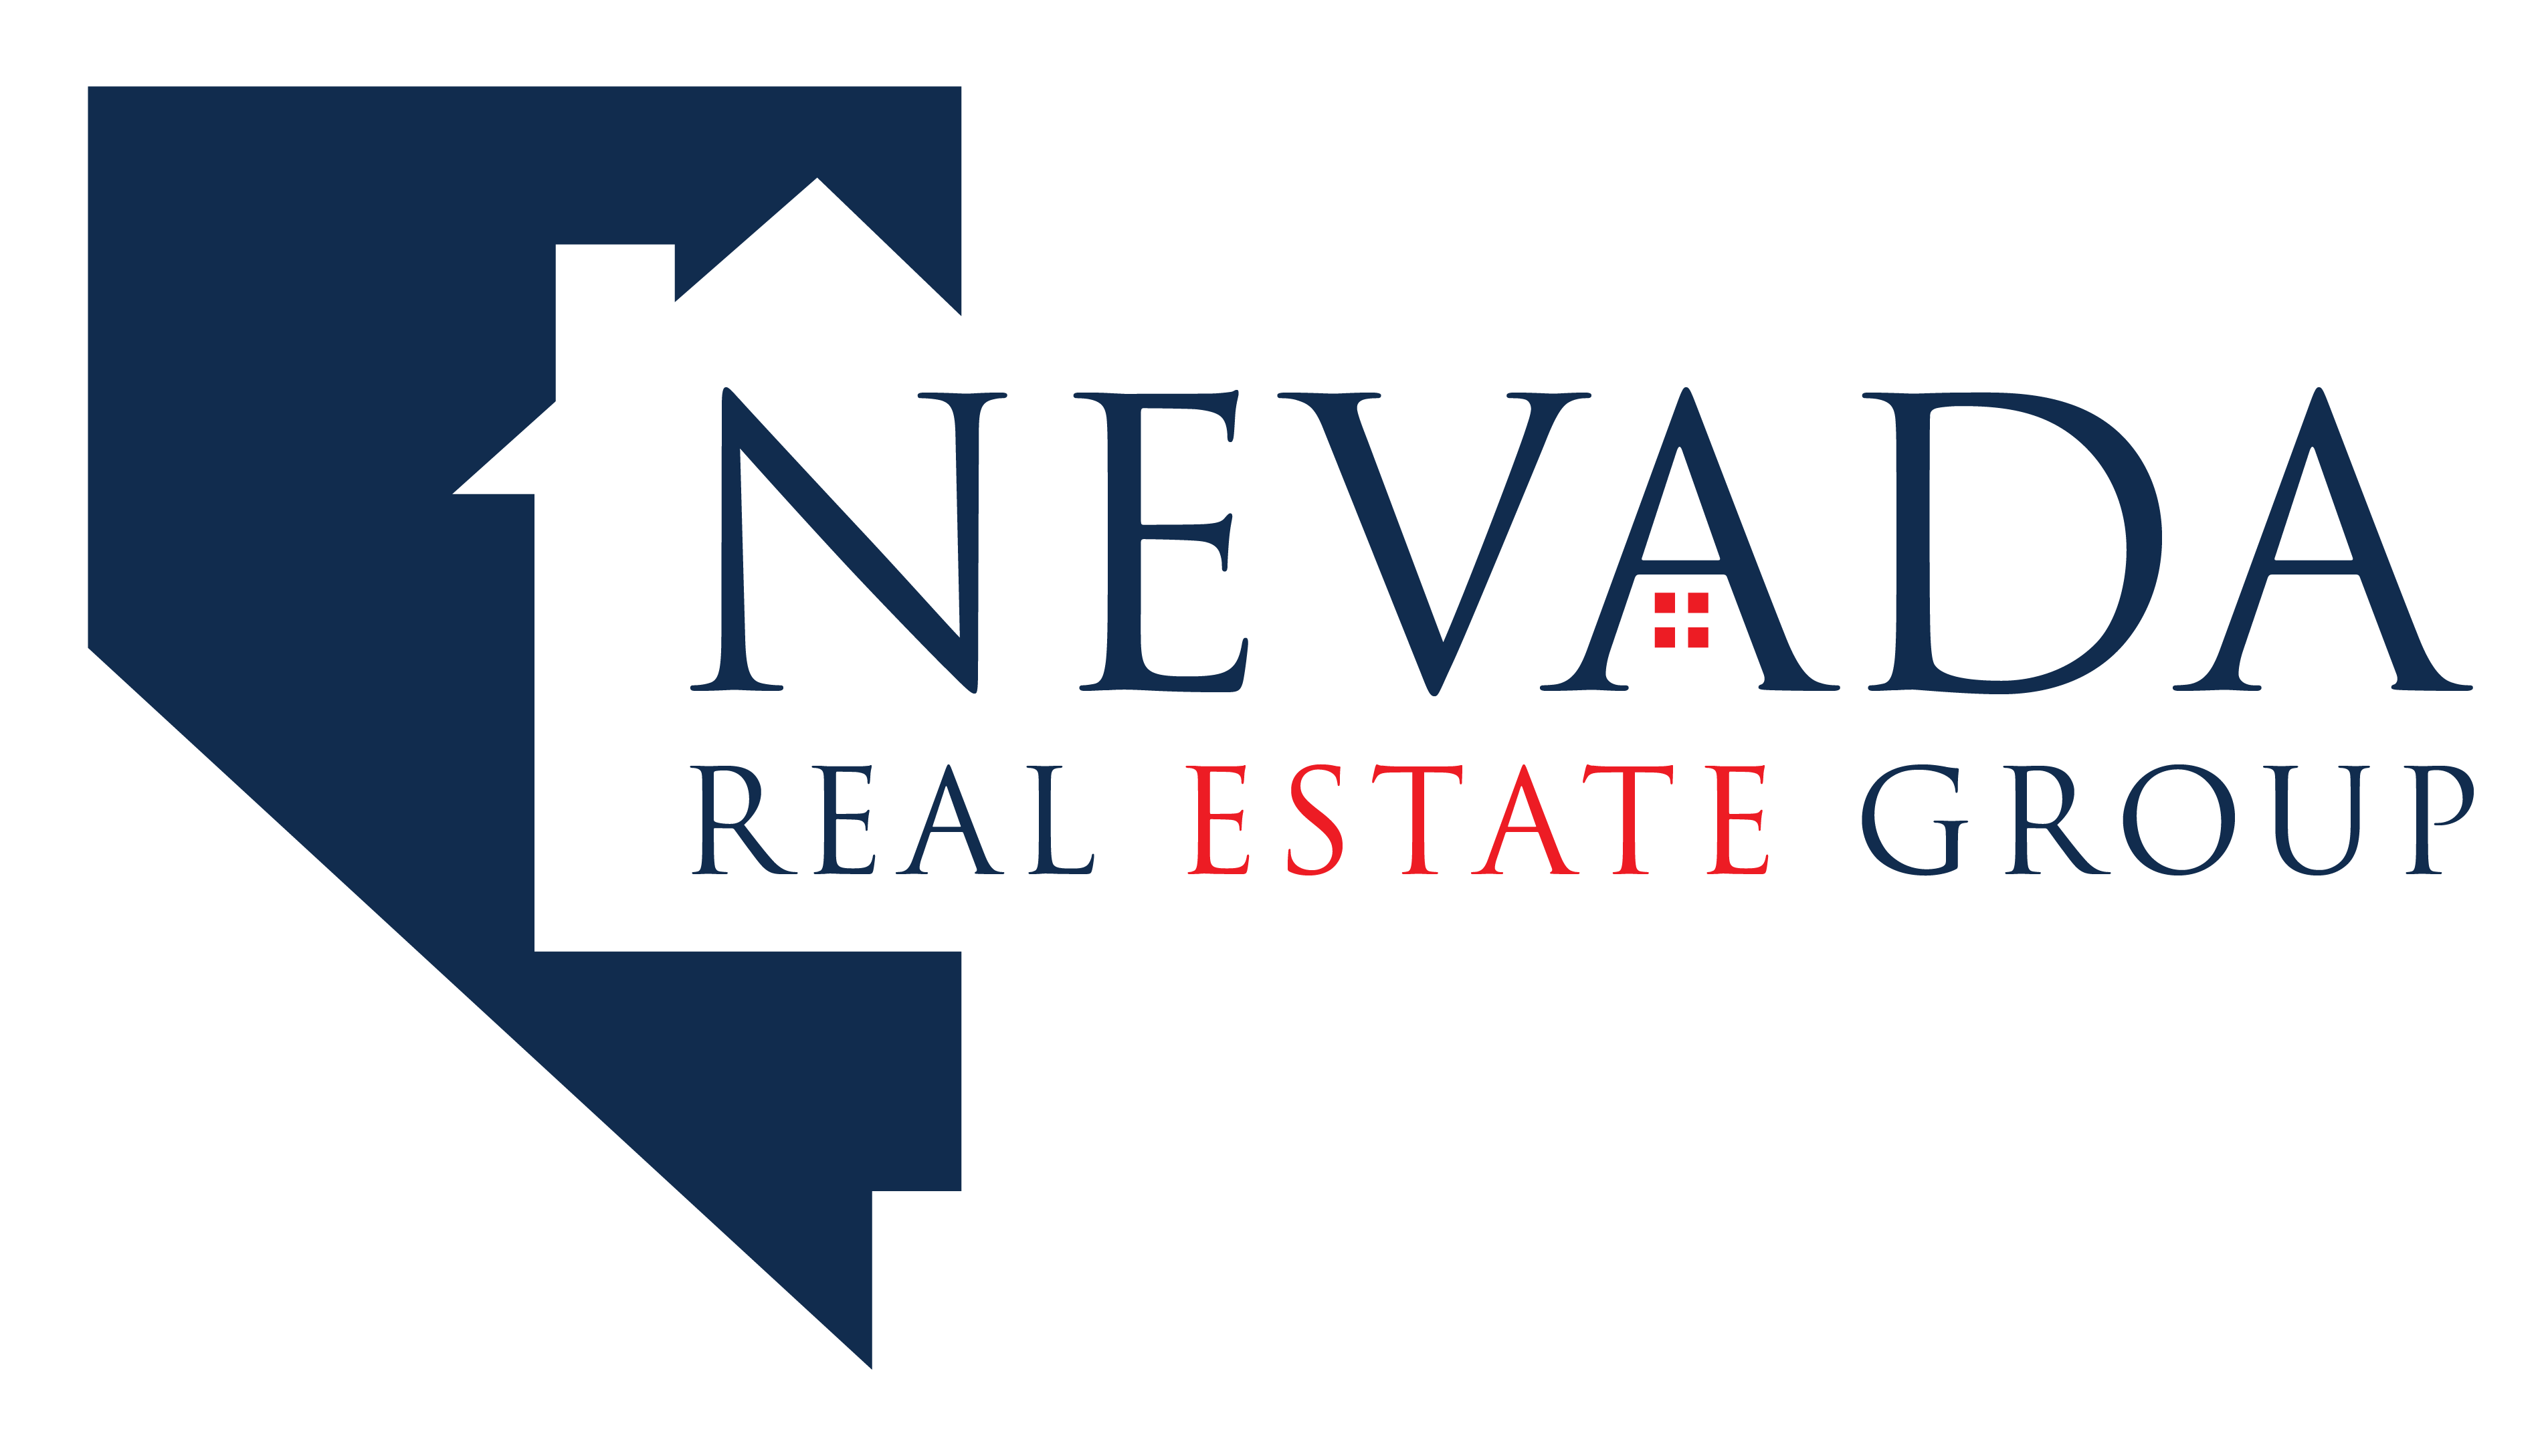 Nevada Real Estate Group, Keller Williams Realty Las Vegas logo